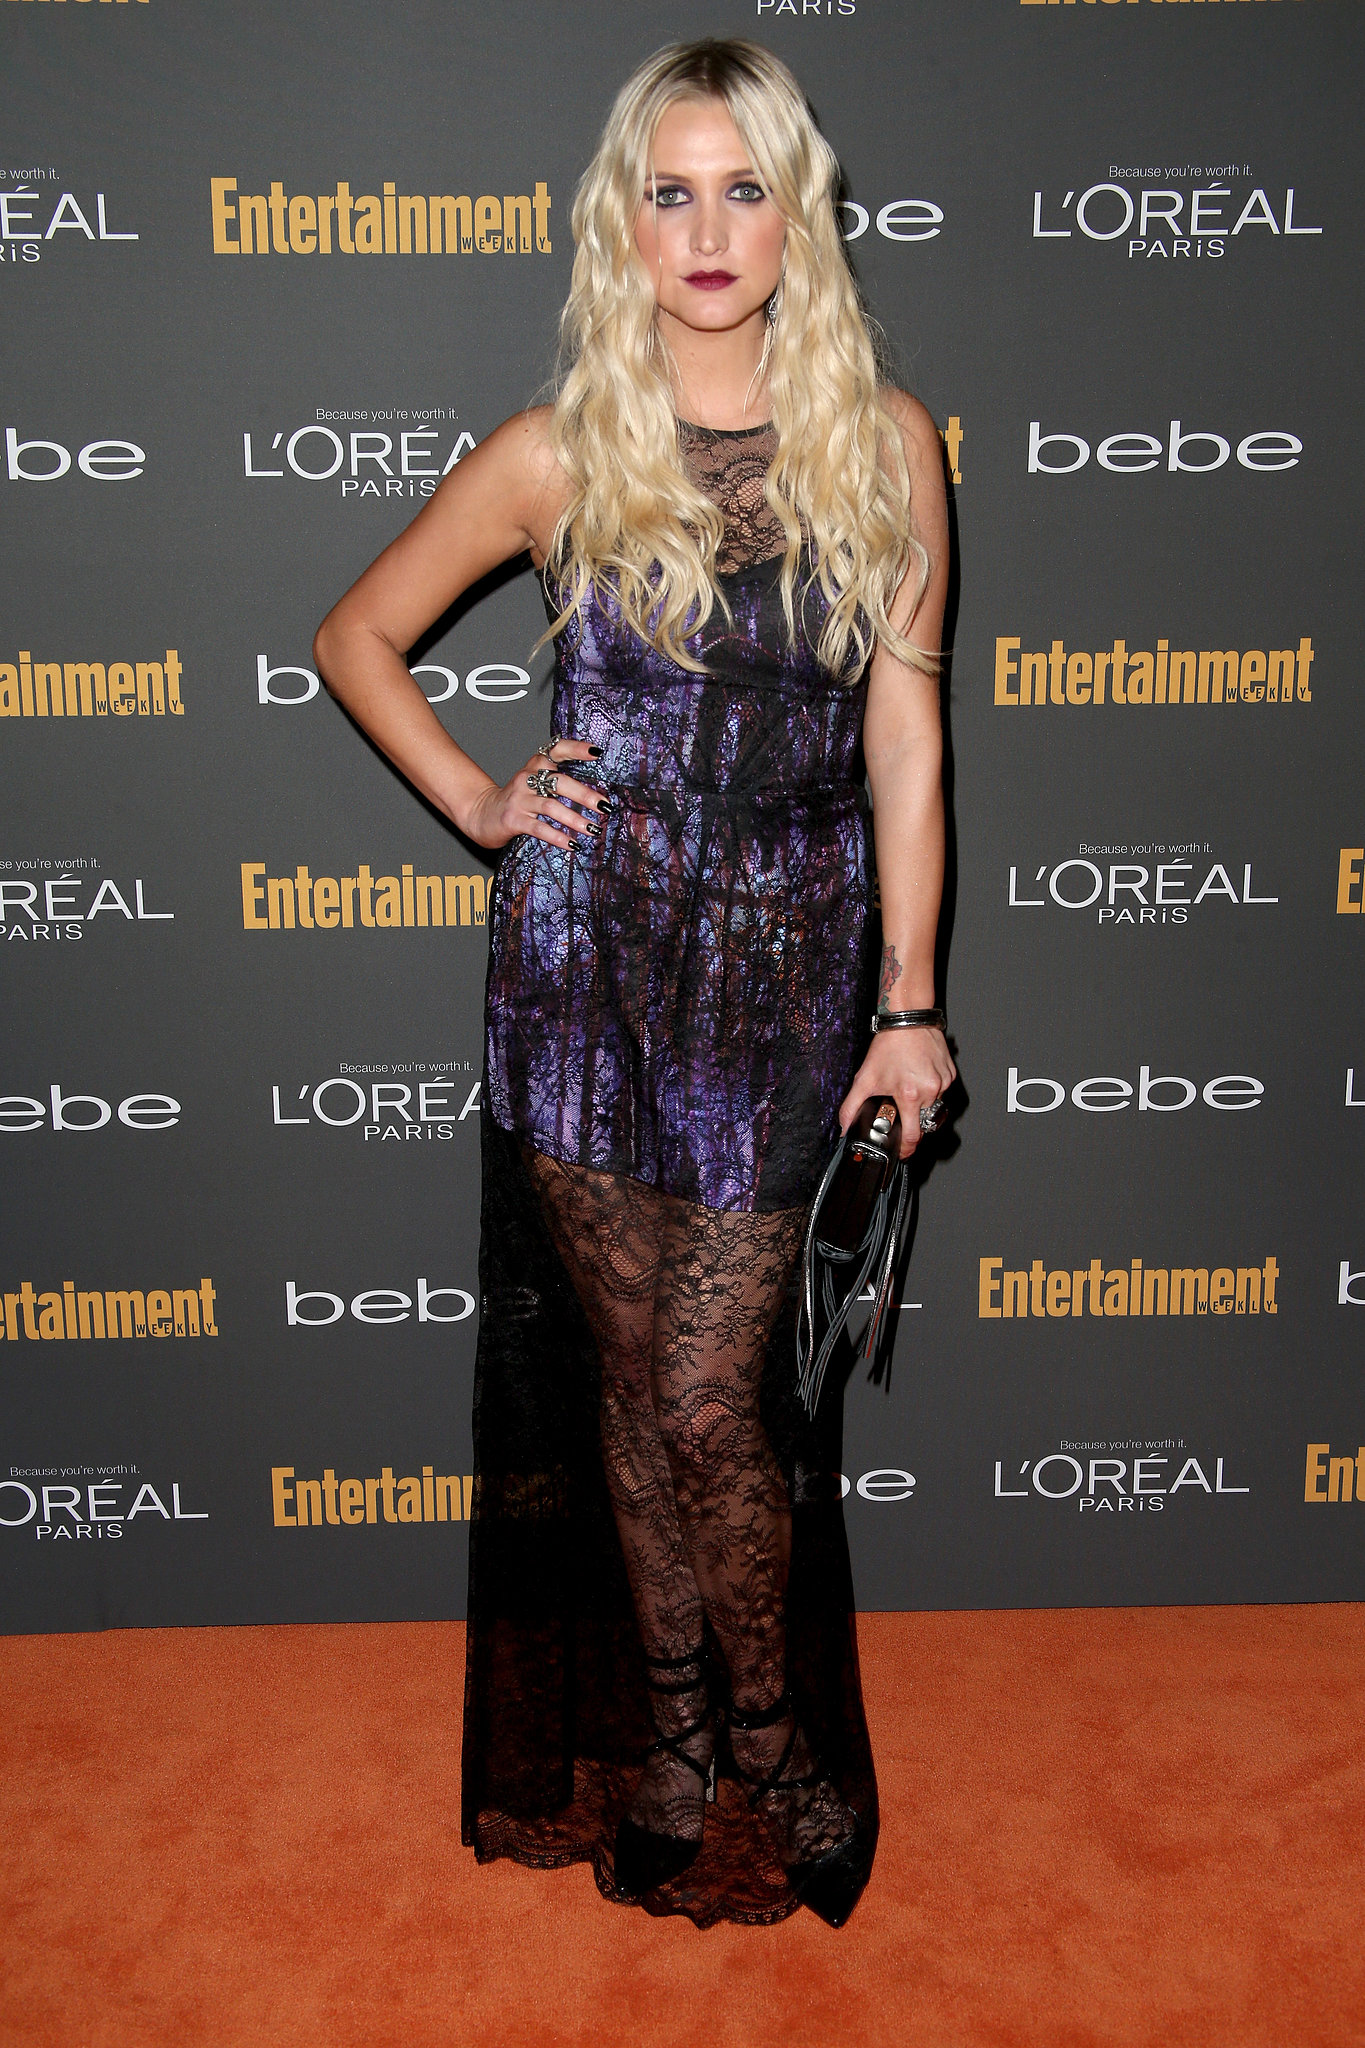 Ashlee Simpson kept it goth in a printed dress with a black lace overlay, and Alice + Olivia heels, at the Entertainm